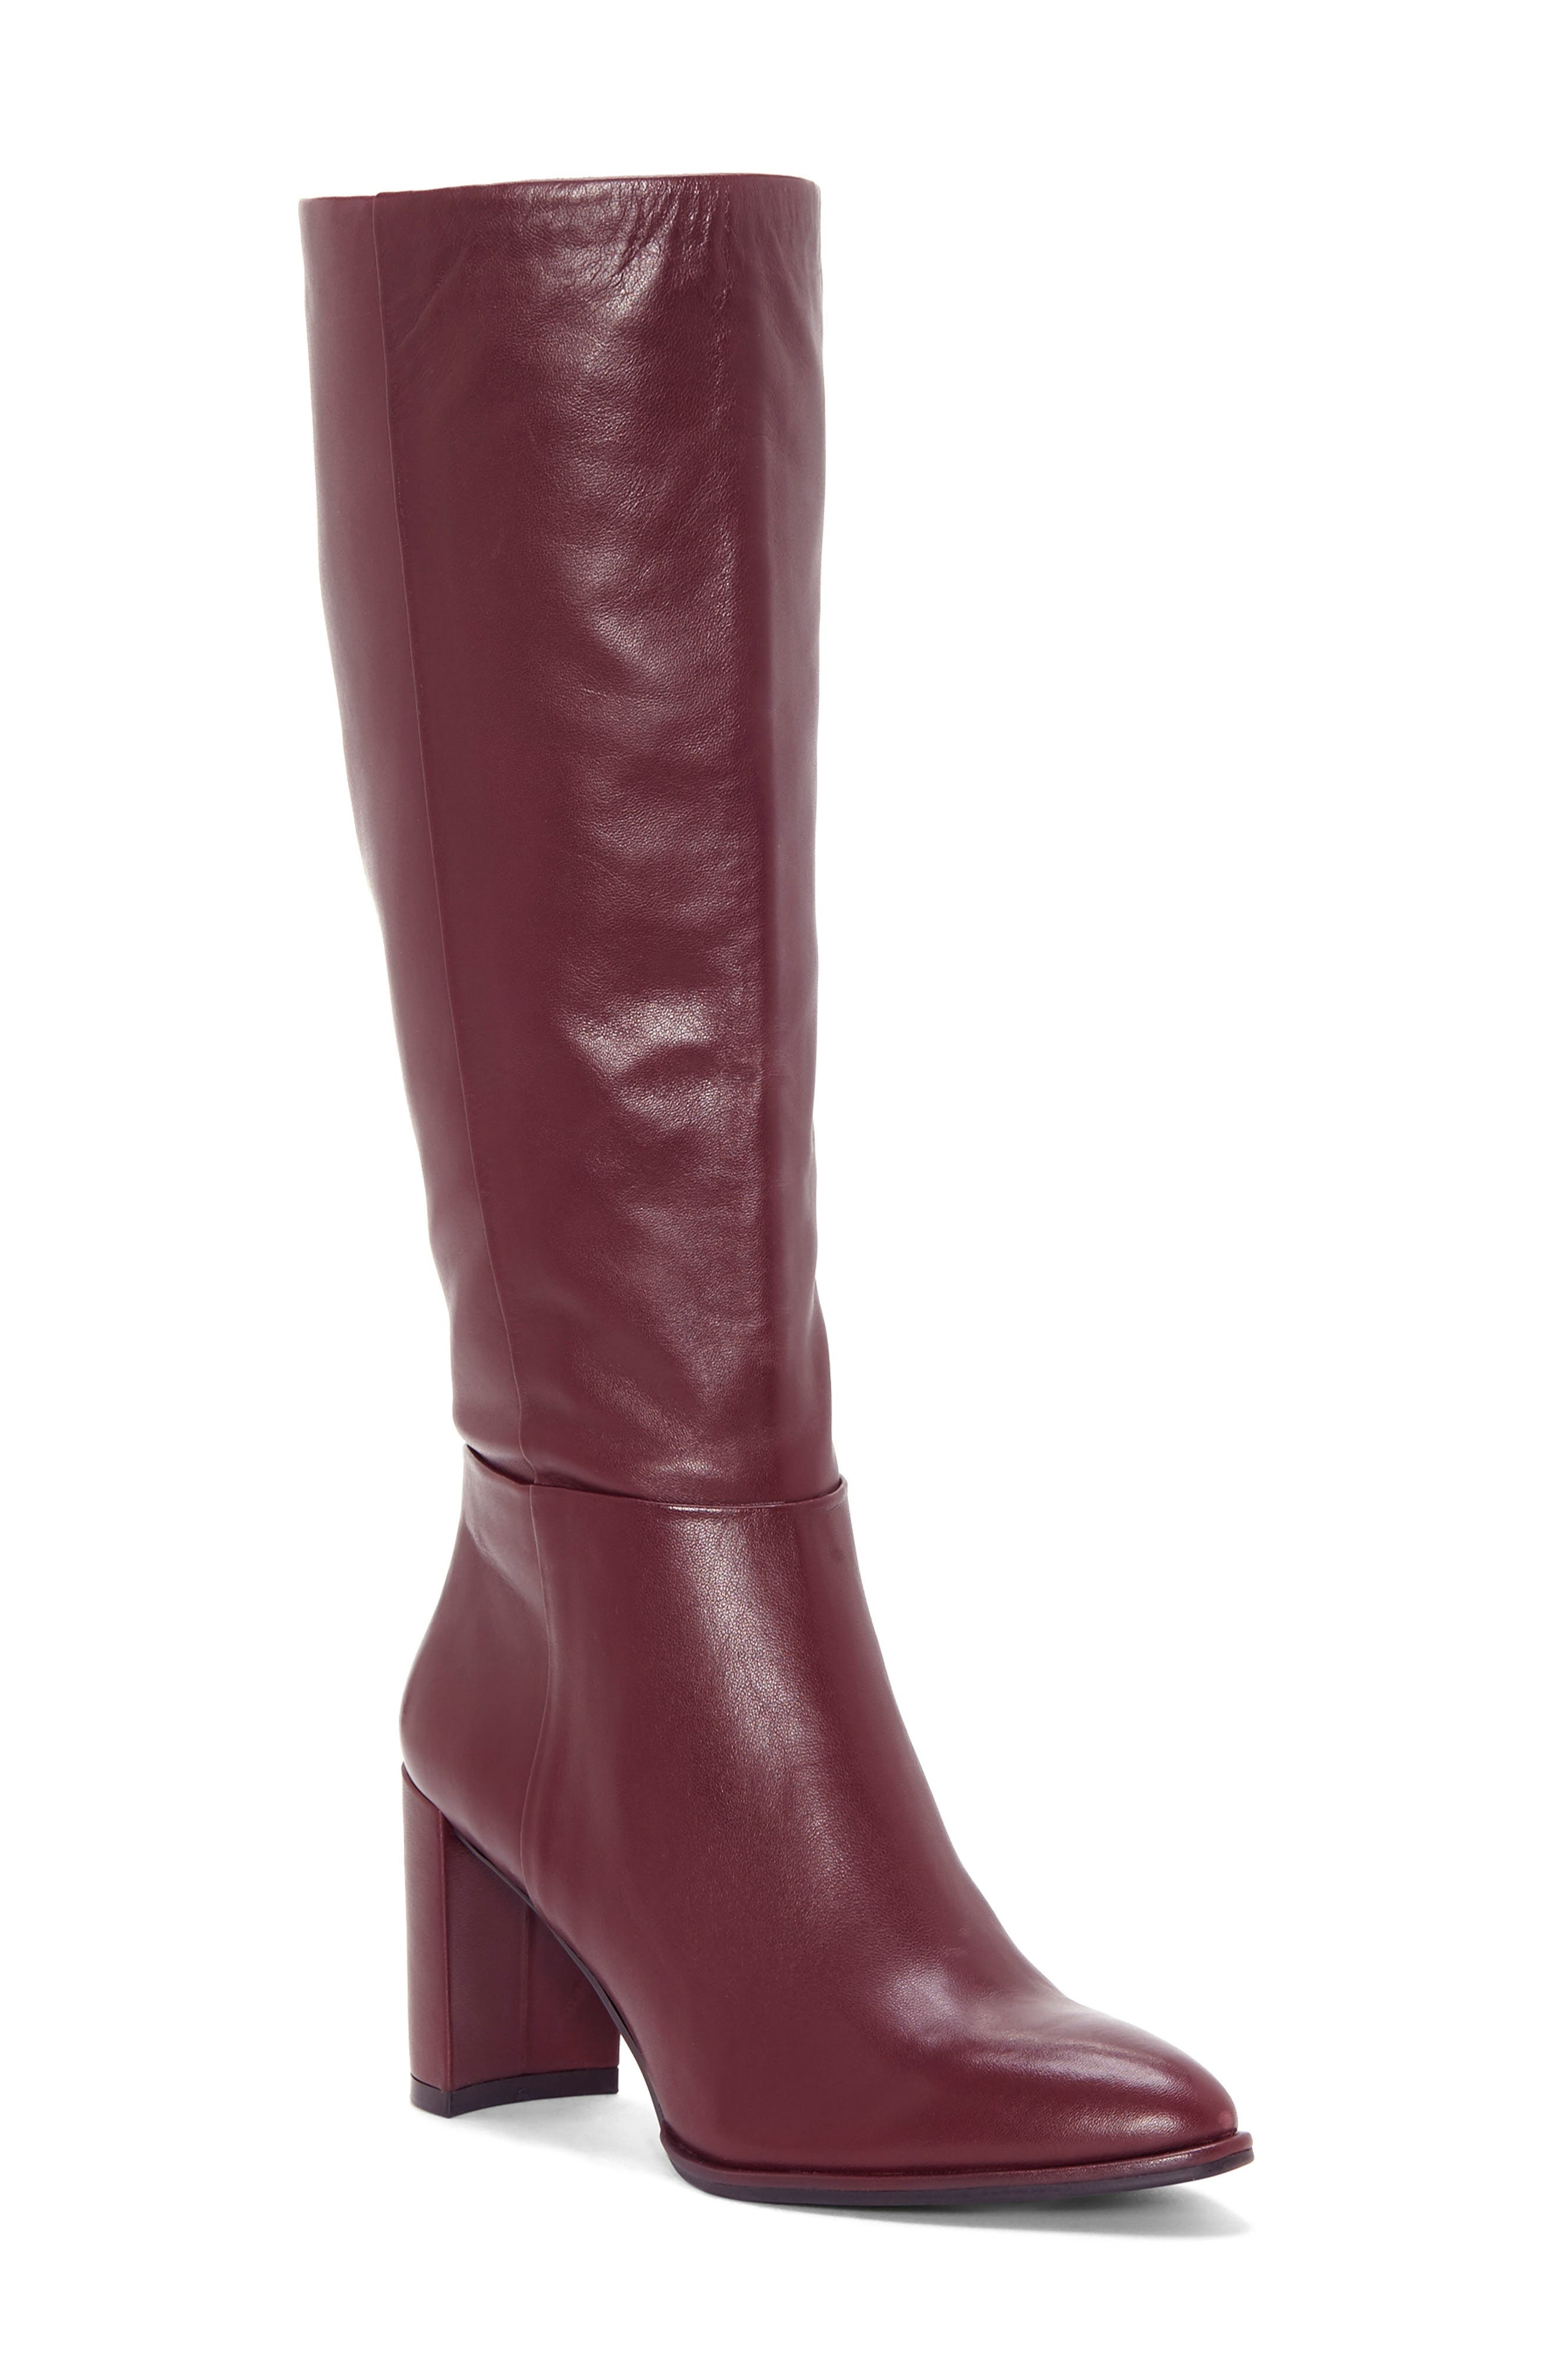 7349789606d Women s Enzo Angiolini Boots